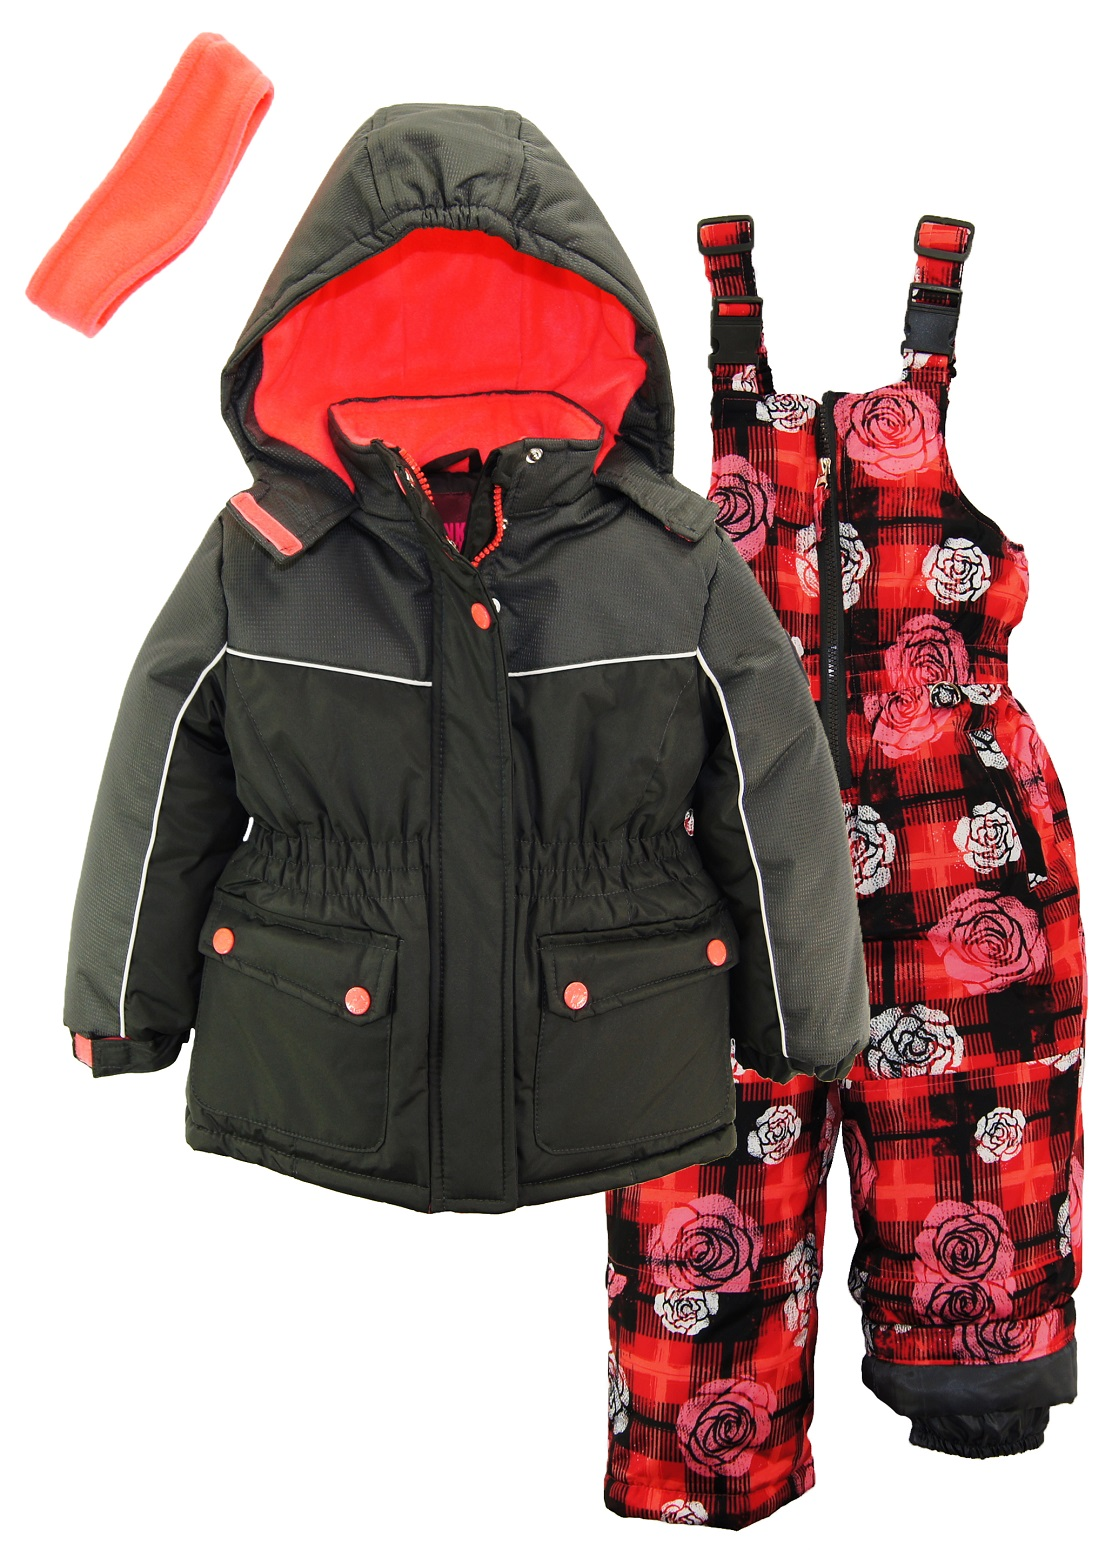 little snowsuit isle fair walmart platinum com girls pink bib jacket ski with snow solid ip